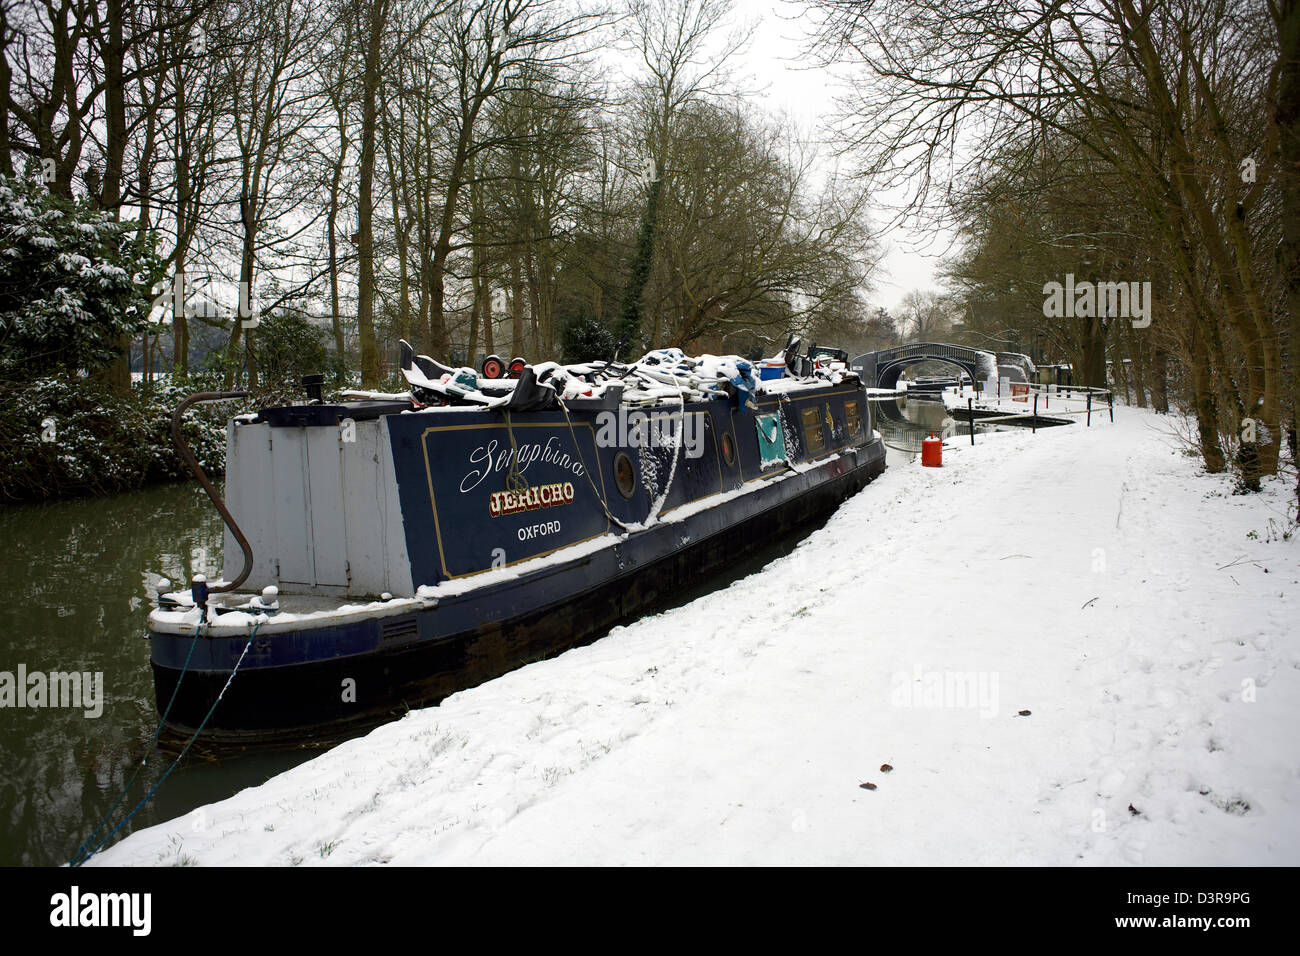 Winter on the South Oxford Canal City of Oxford Oxfordshire Oxon England boat narrowboat snow winter scene snow - Stock Image